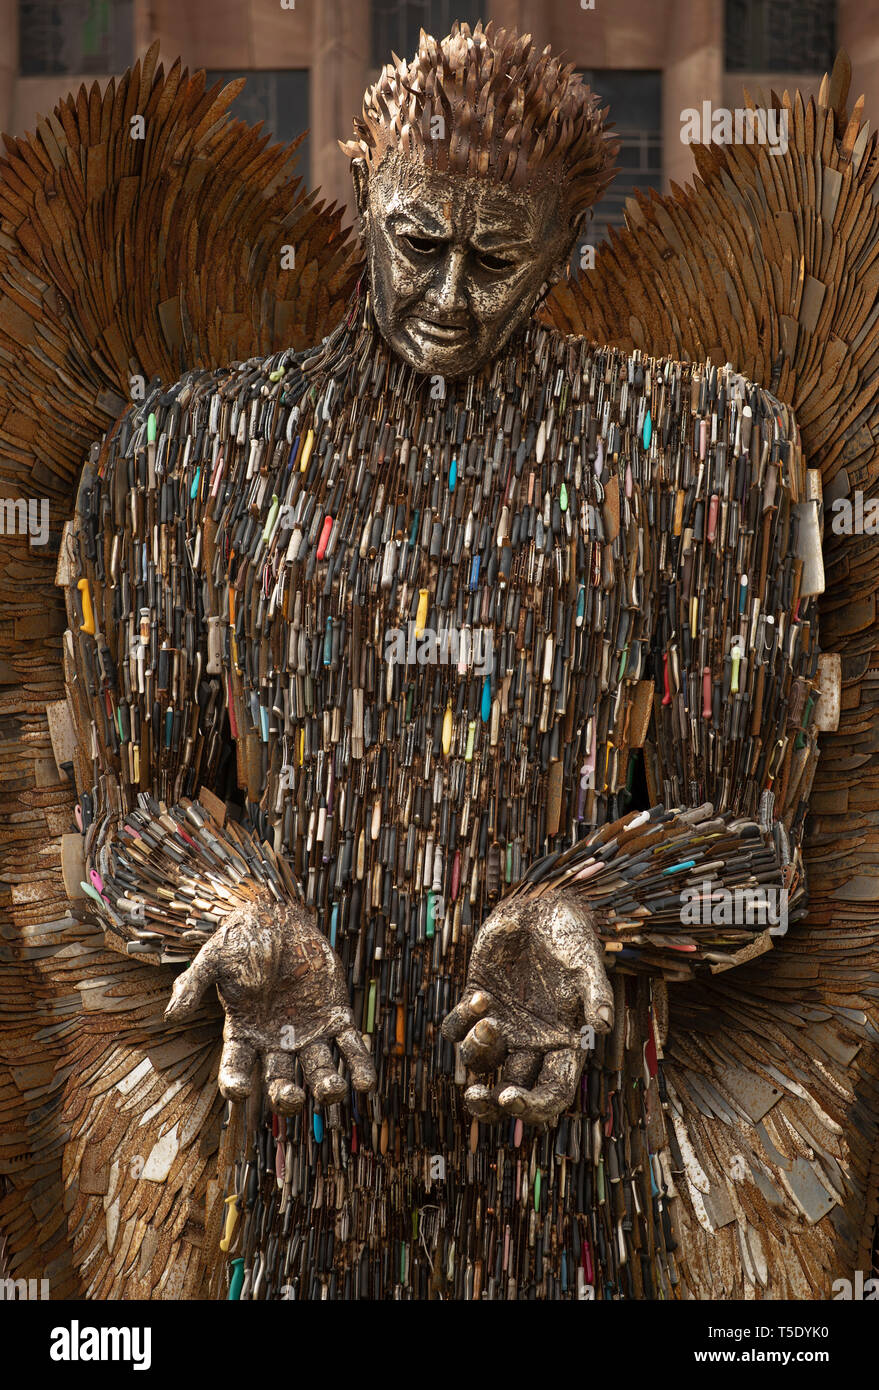 Coventry Cathedral. Thursday April 18 2019  Artist Alfie Bradley's Knife Angel, stands outside Coventry Cathedral. Dedicated to victims of knife crime. - Stock Image